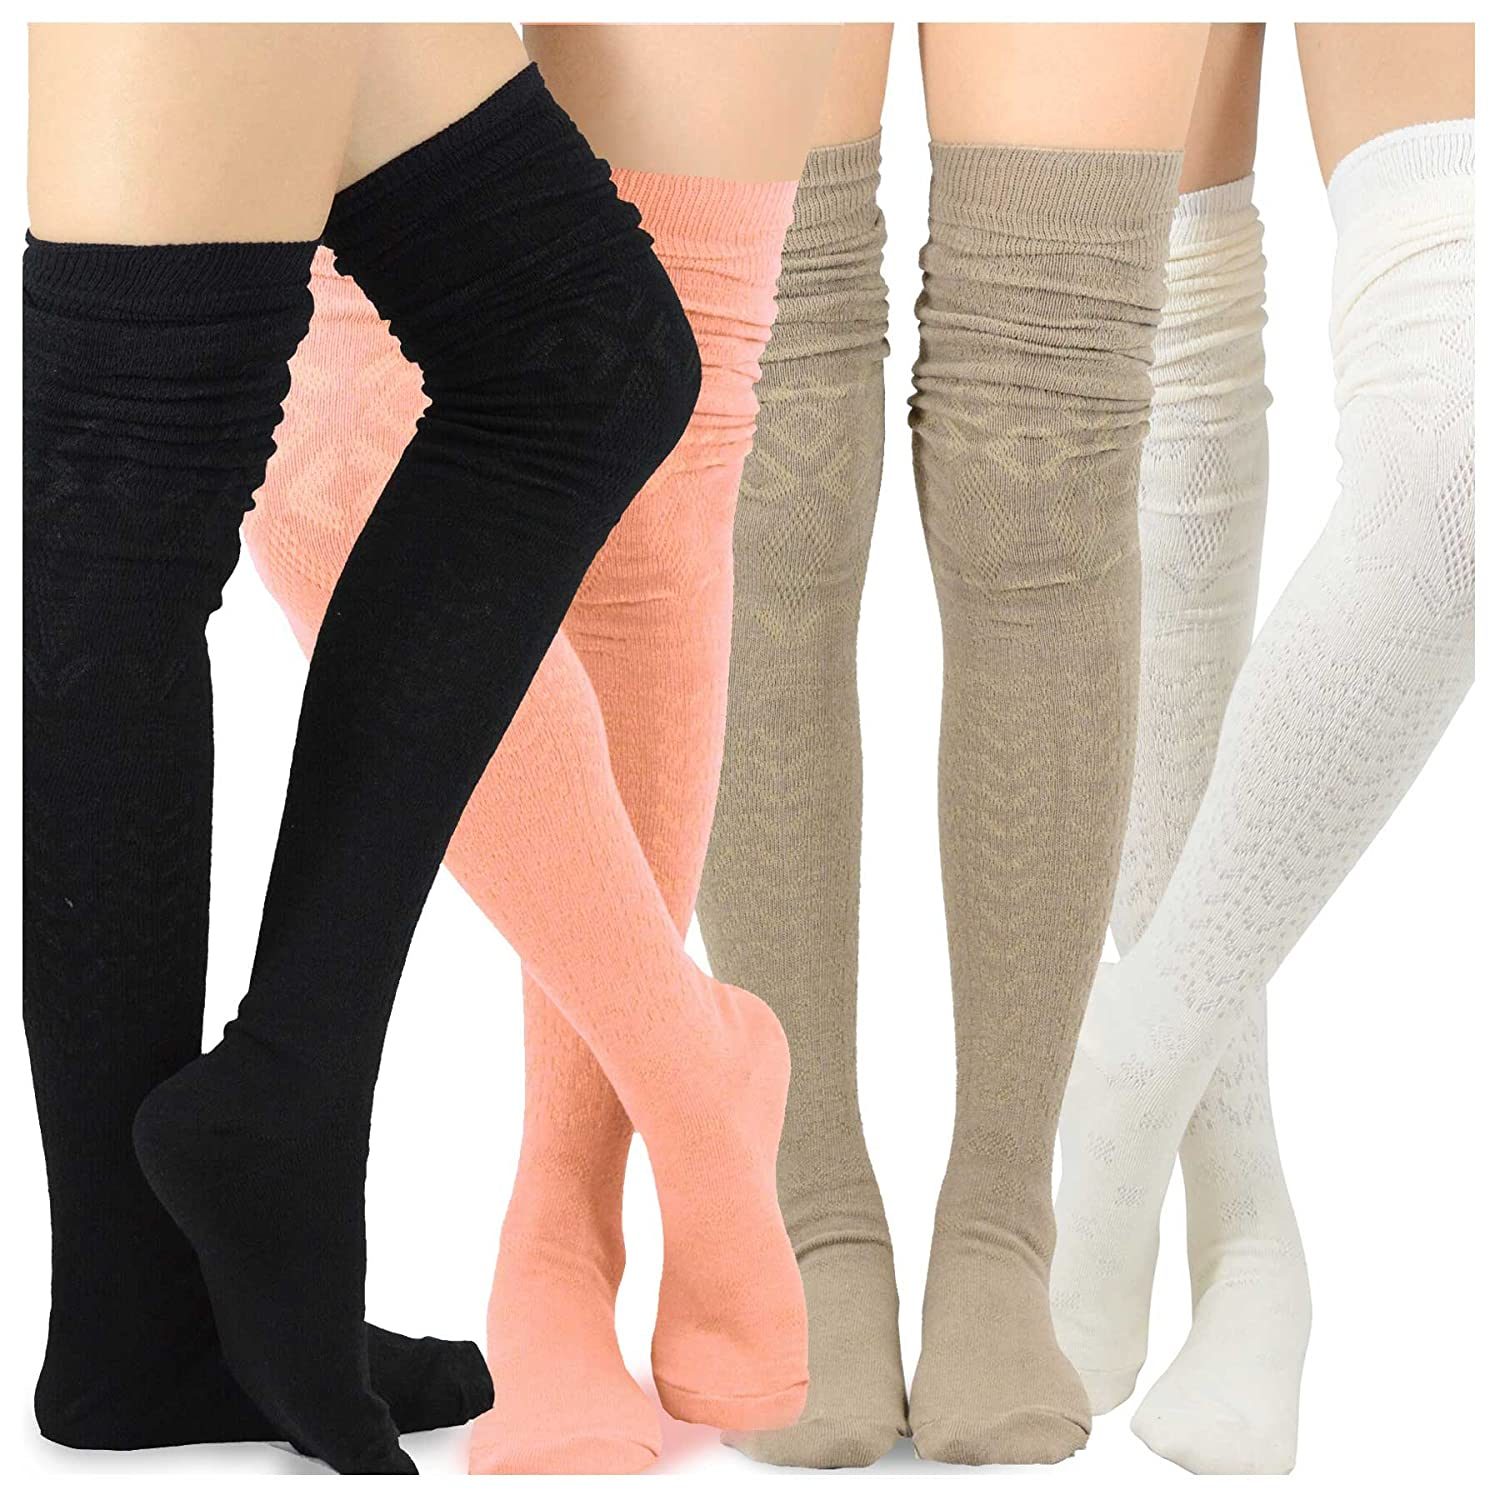 Teehee Women's Fashion Extra Long Cotton Thigh High Socks - 4 Pair Pack soxnet Inc